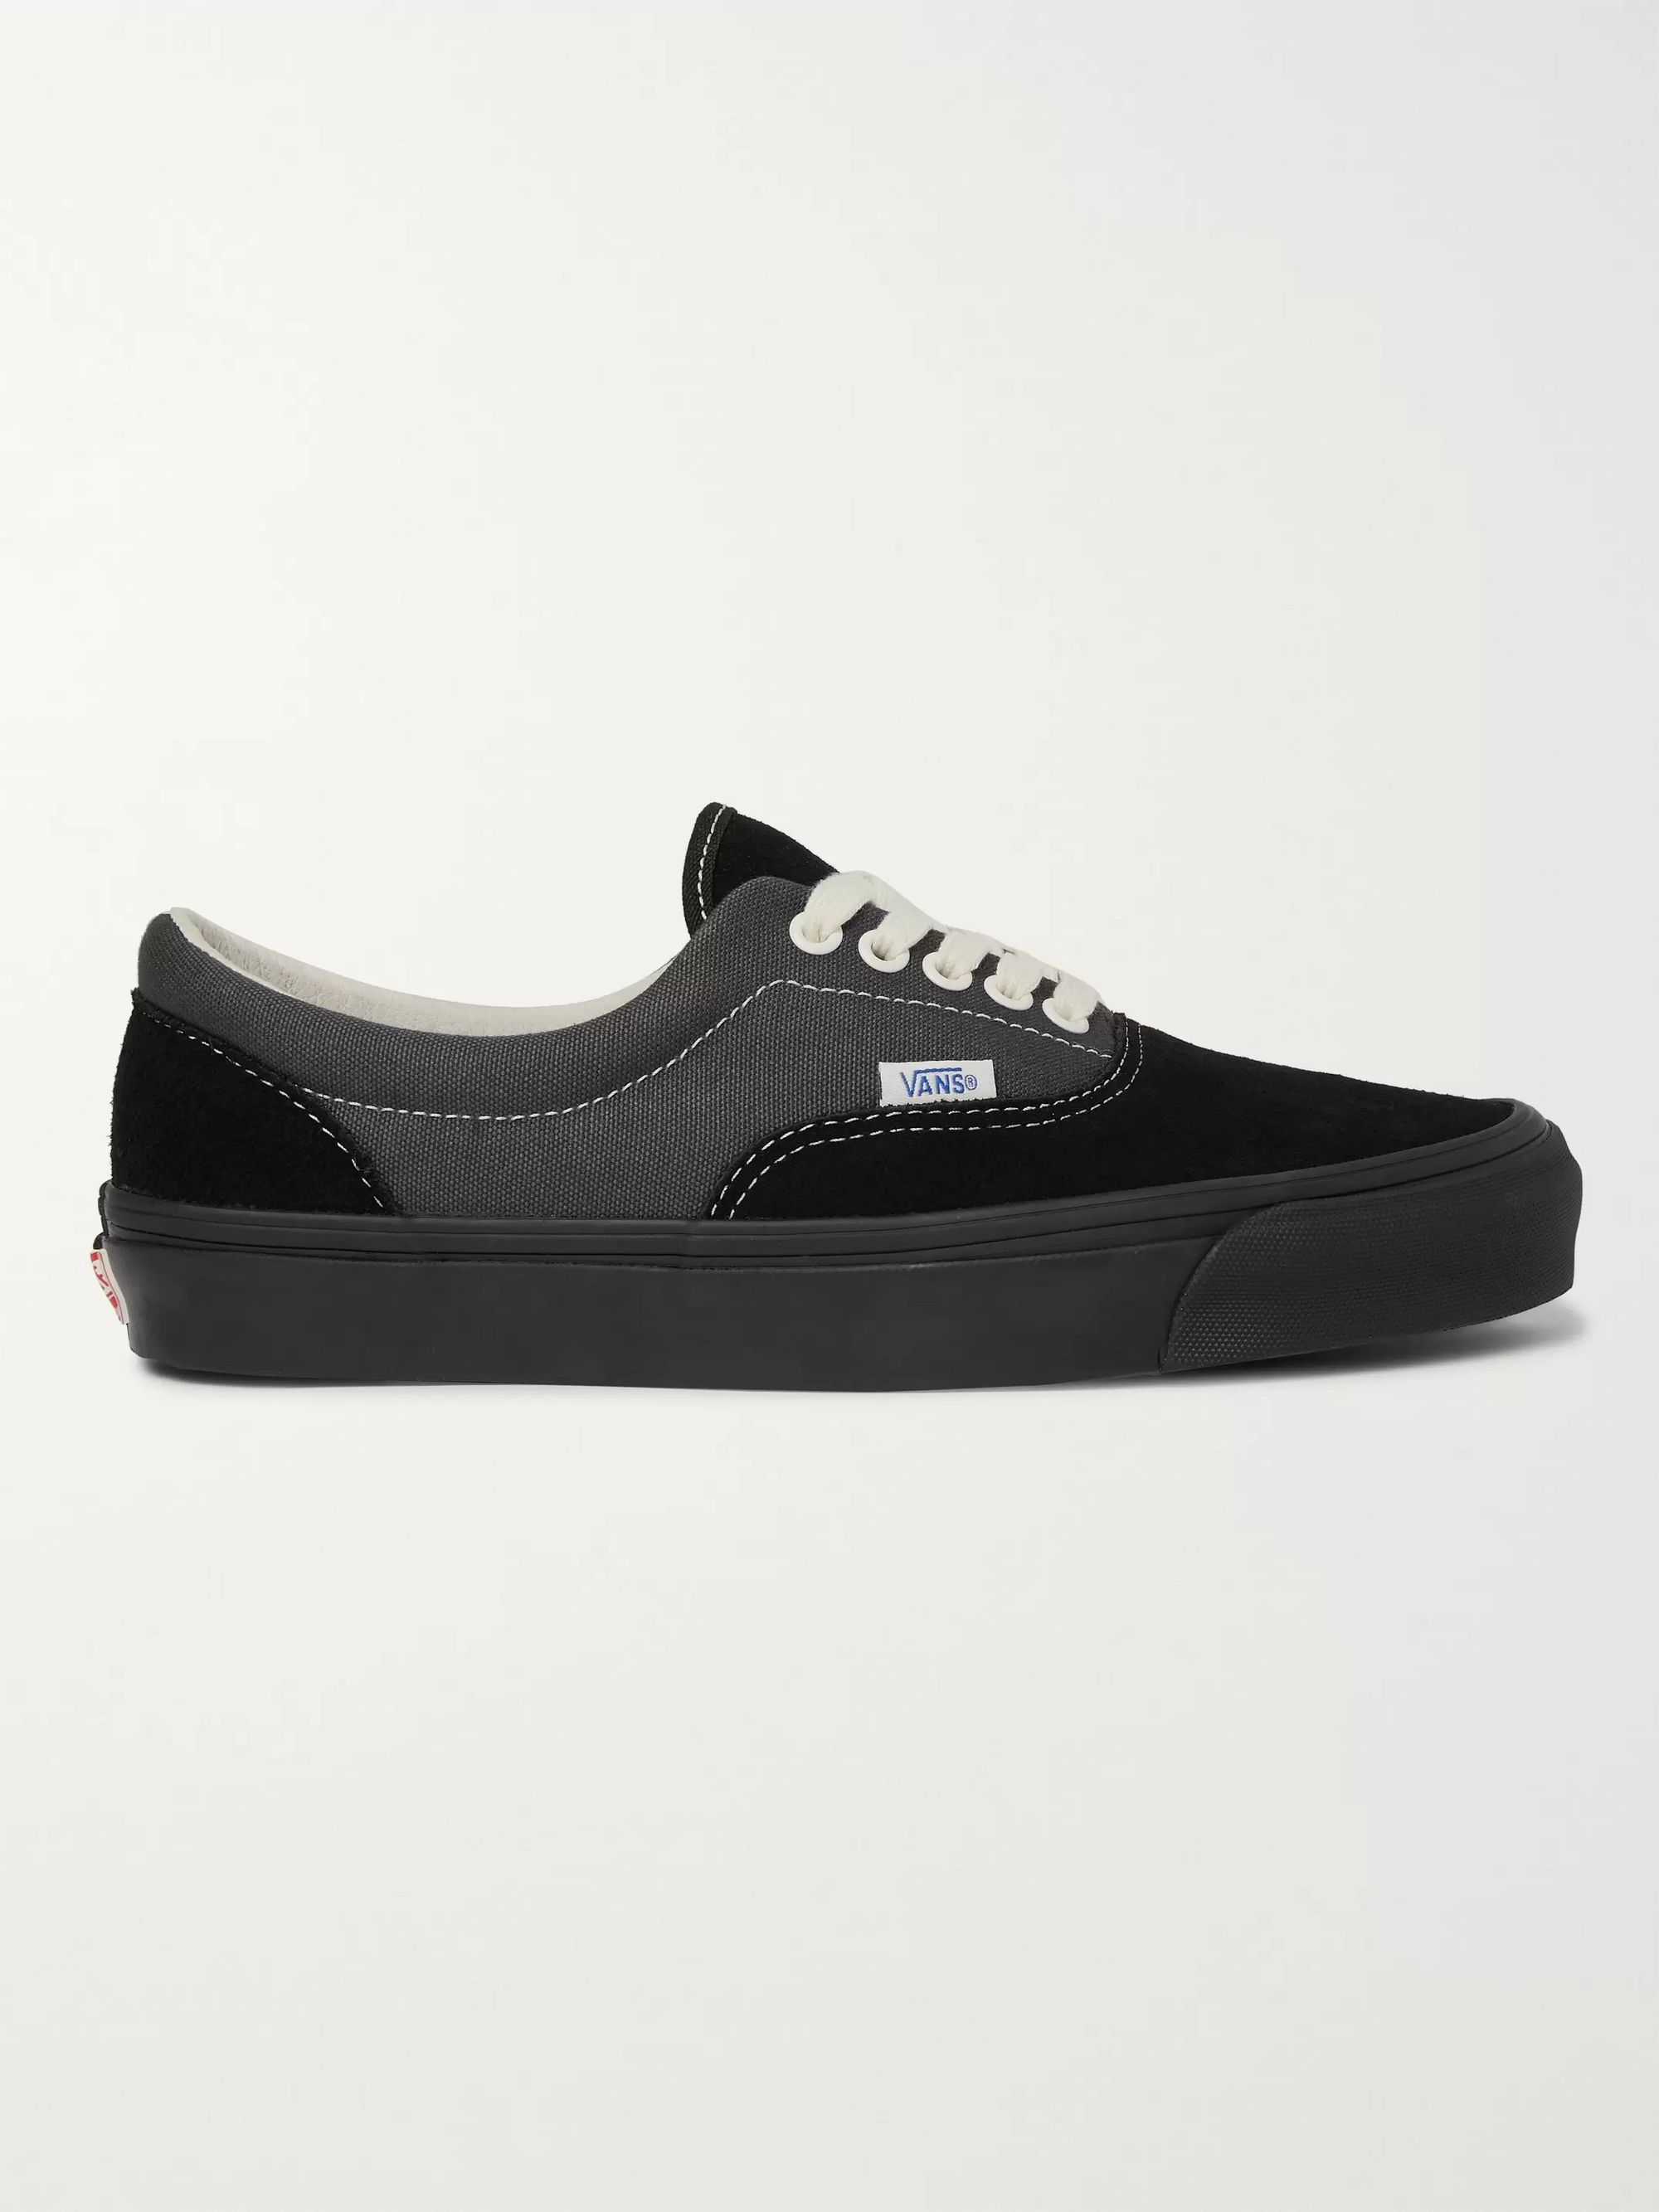 Vans OG Era LX Colour-Block Canvas and Suede Sneakers